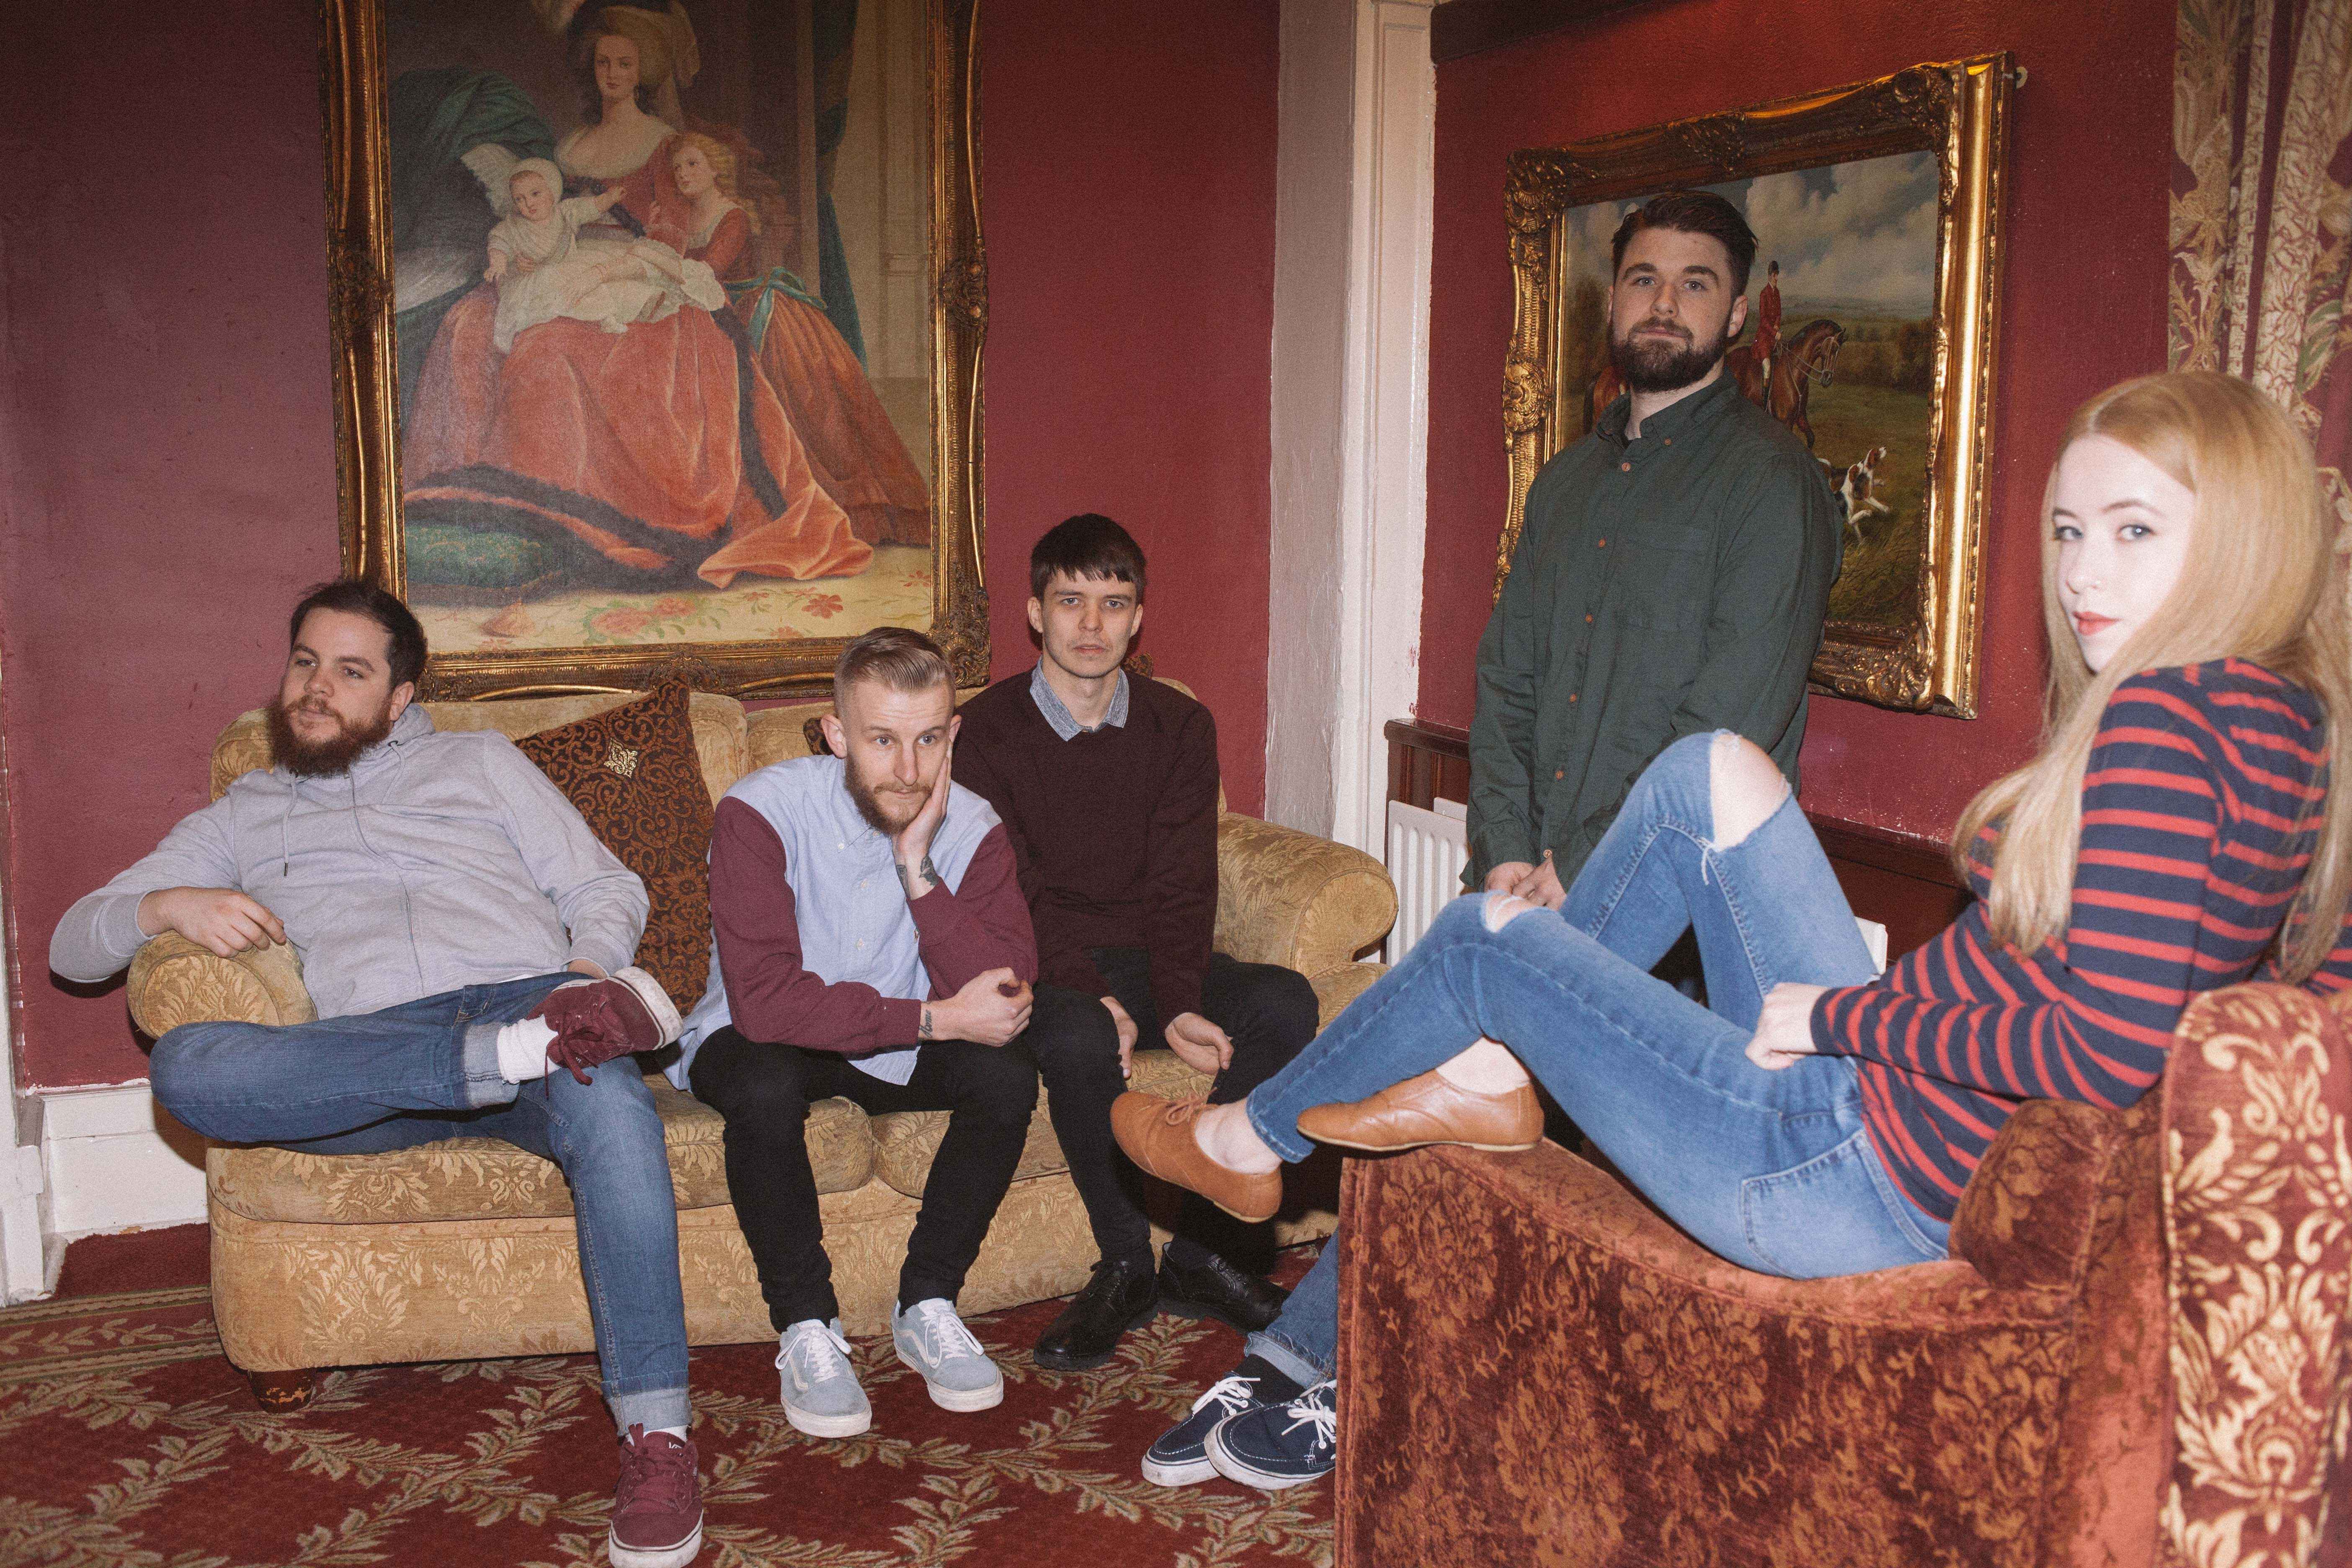 On September 18, Irish indie punks The Winter Passing will release their debut LP, A Different Space of Mind.